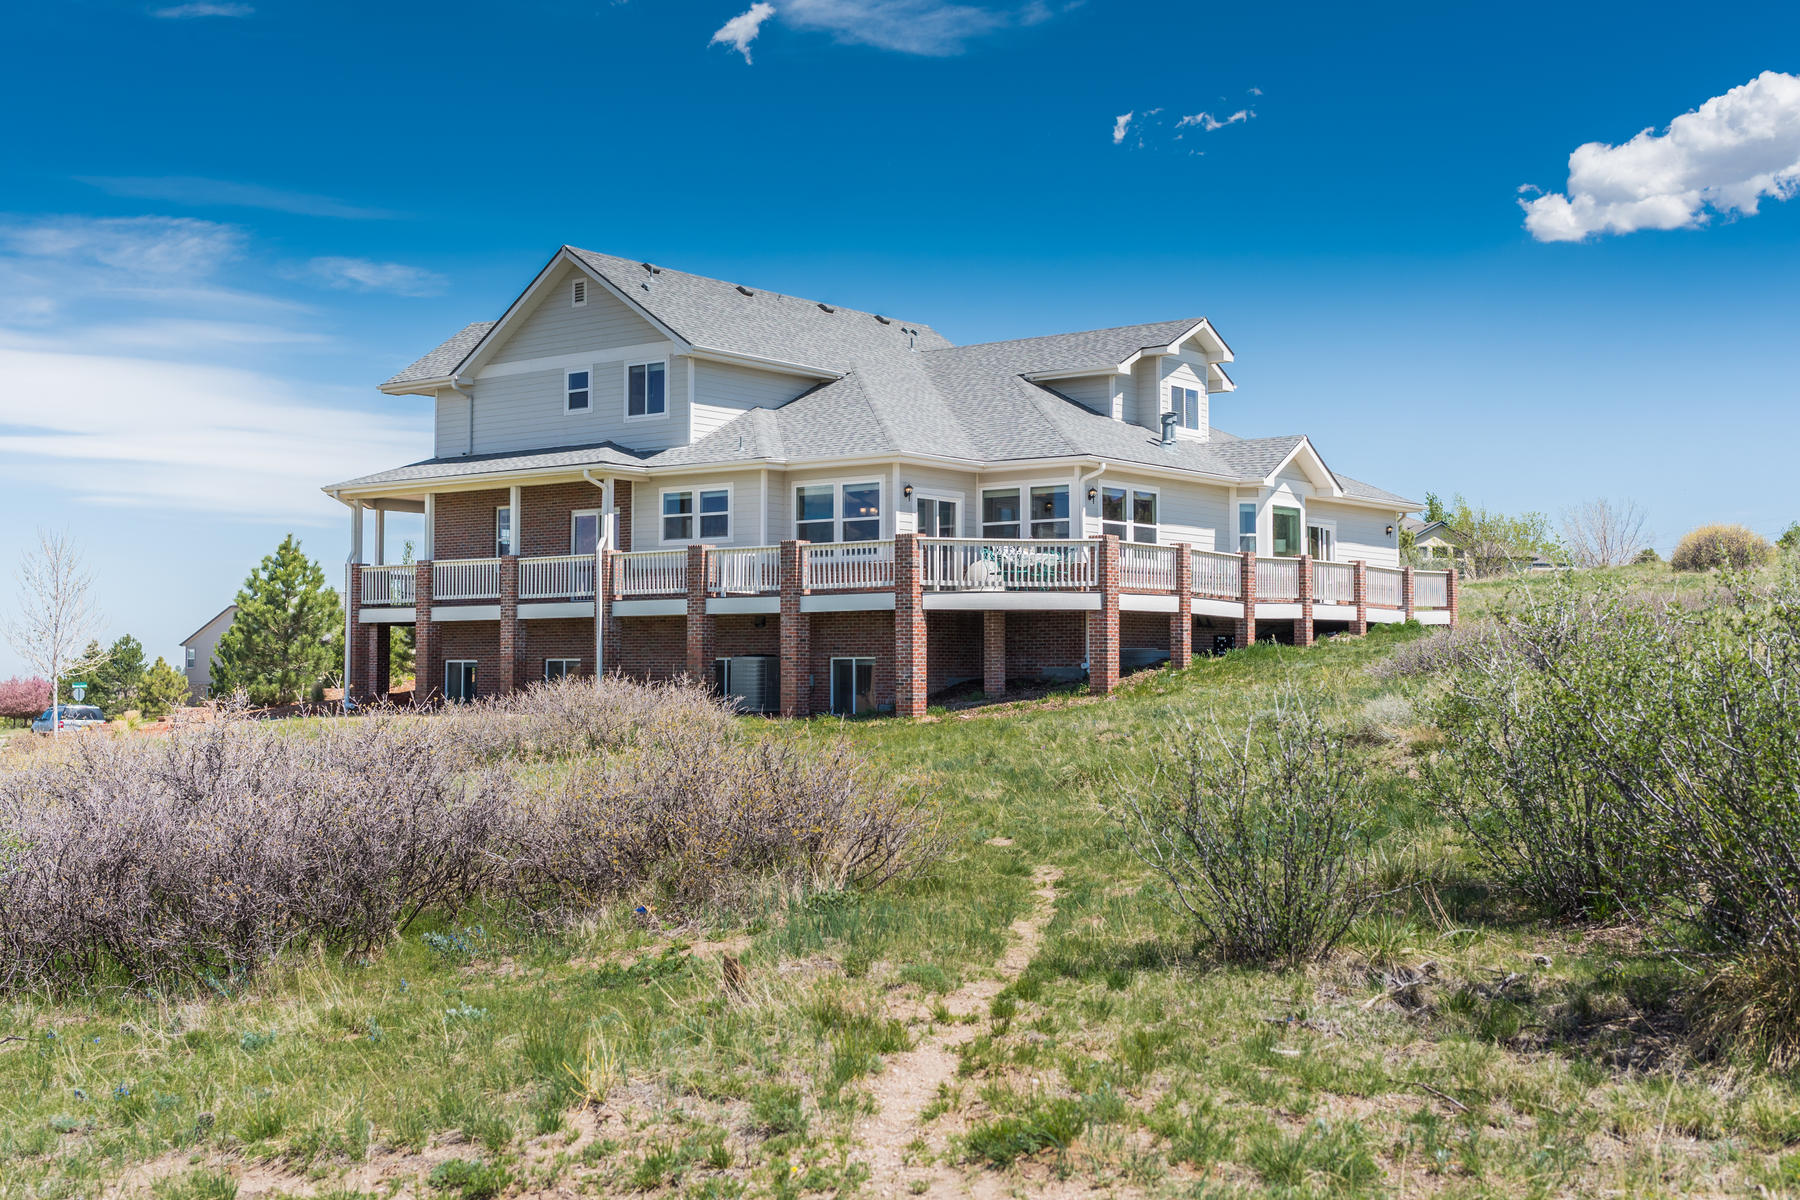 Single Family Home for Active at Ideally situated on 1.1-acres with million dollar views of the Front Range 20054 E Hanging J Ranch Pl Parker, Colorado 80134 United States